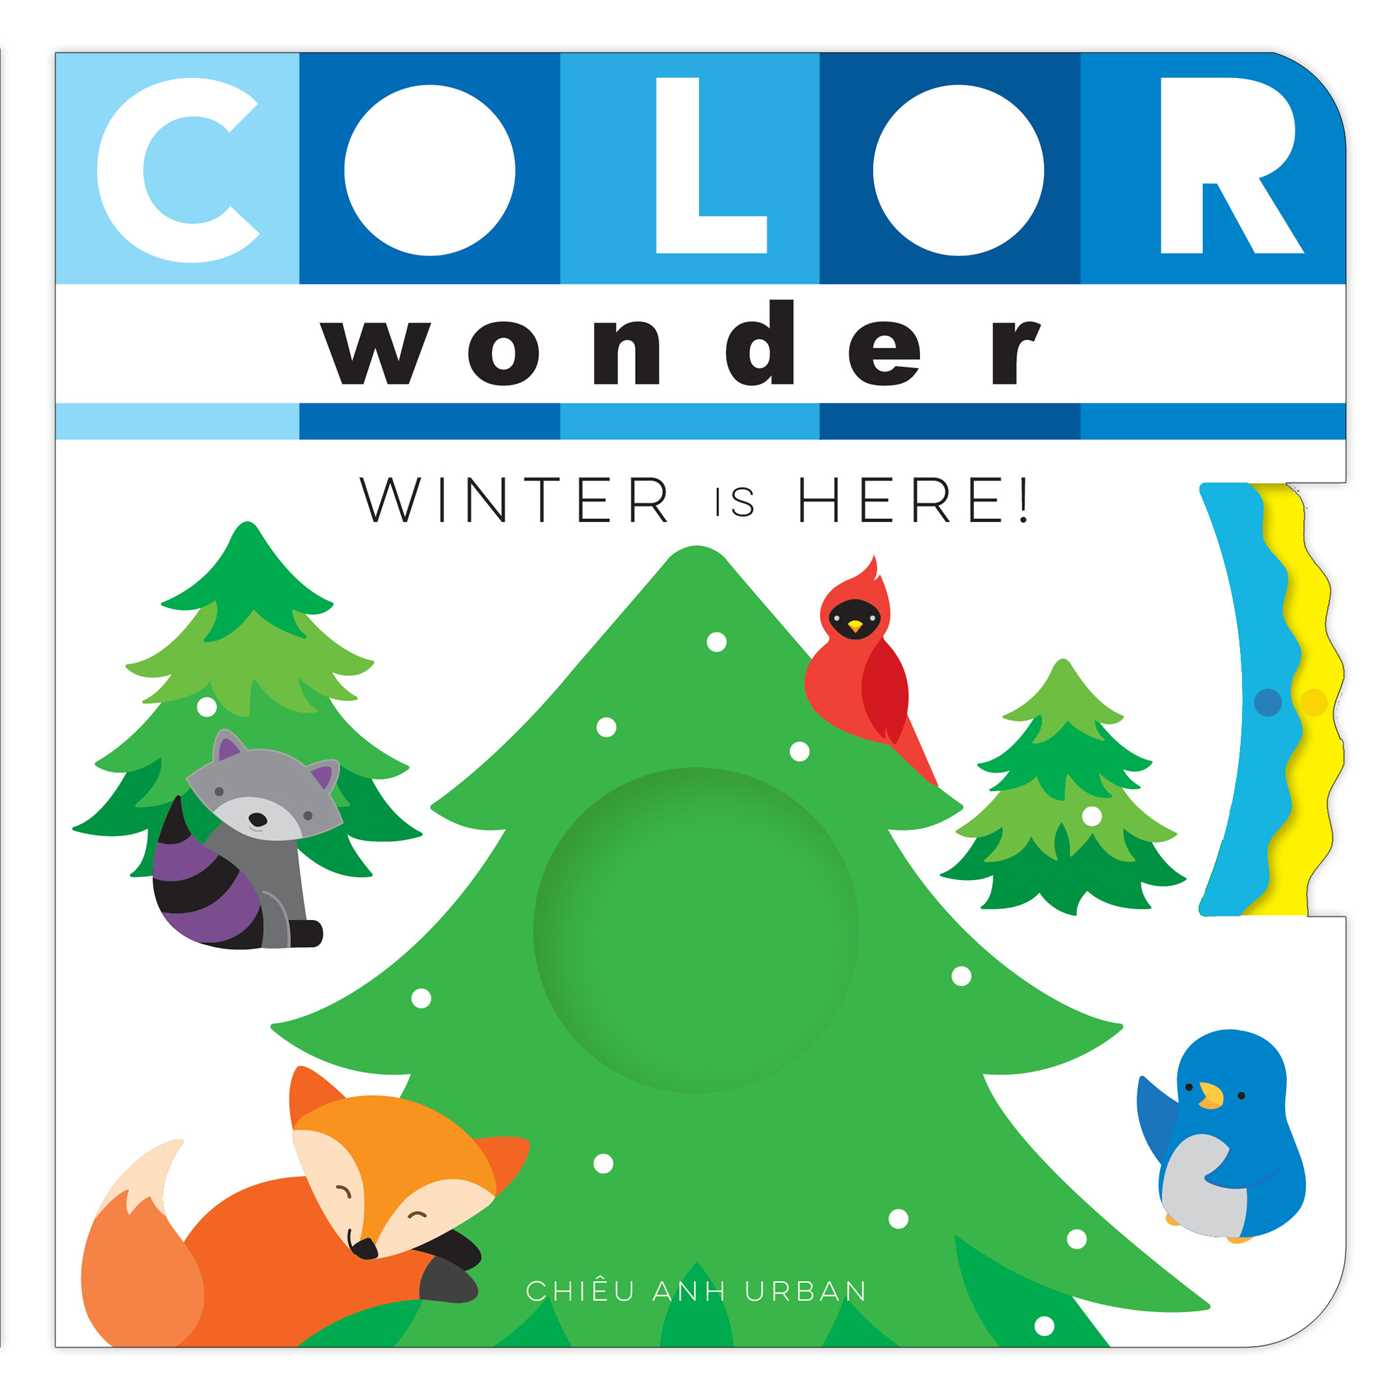 Color Wonder Winter Is Here! | Book by Chieu Anh Urban | Official ...